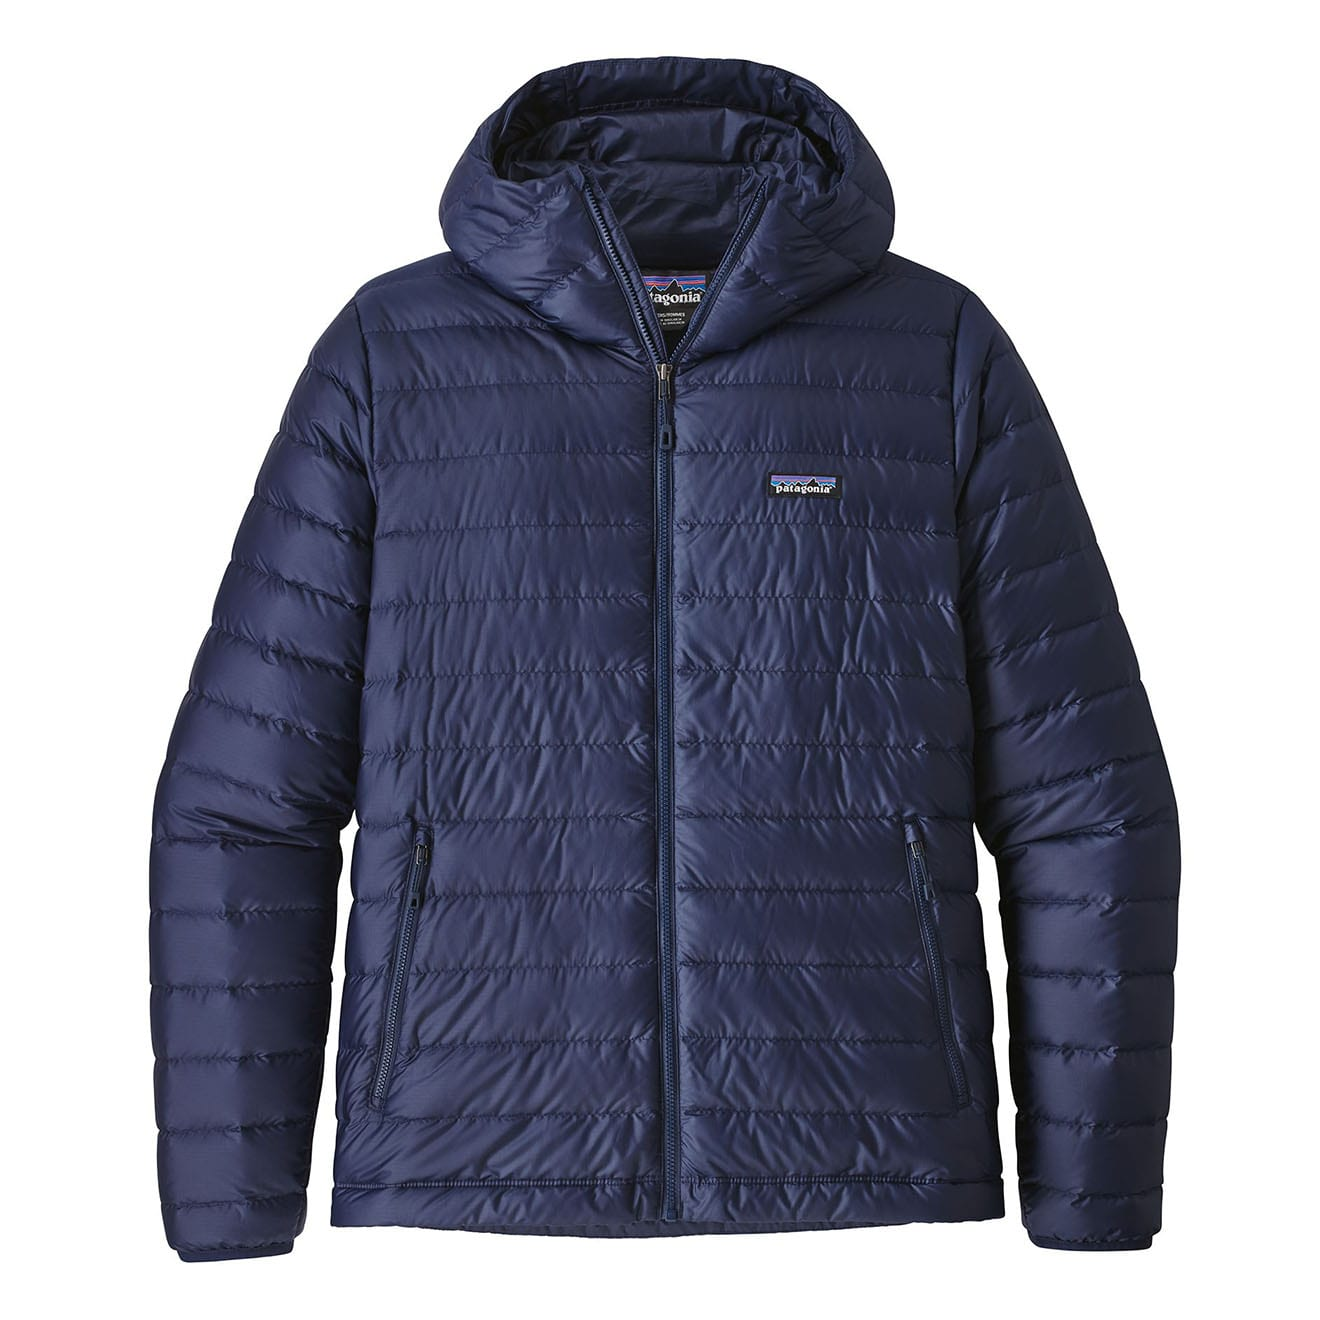 Patagonia Down Sweater Hoody Jacket Classic Navy The